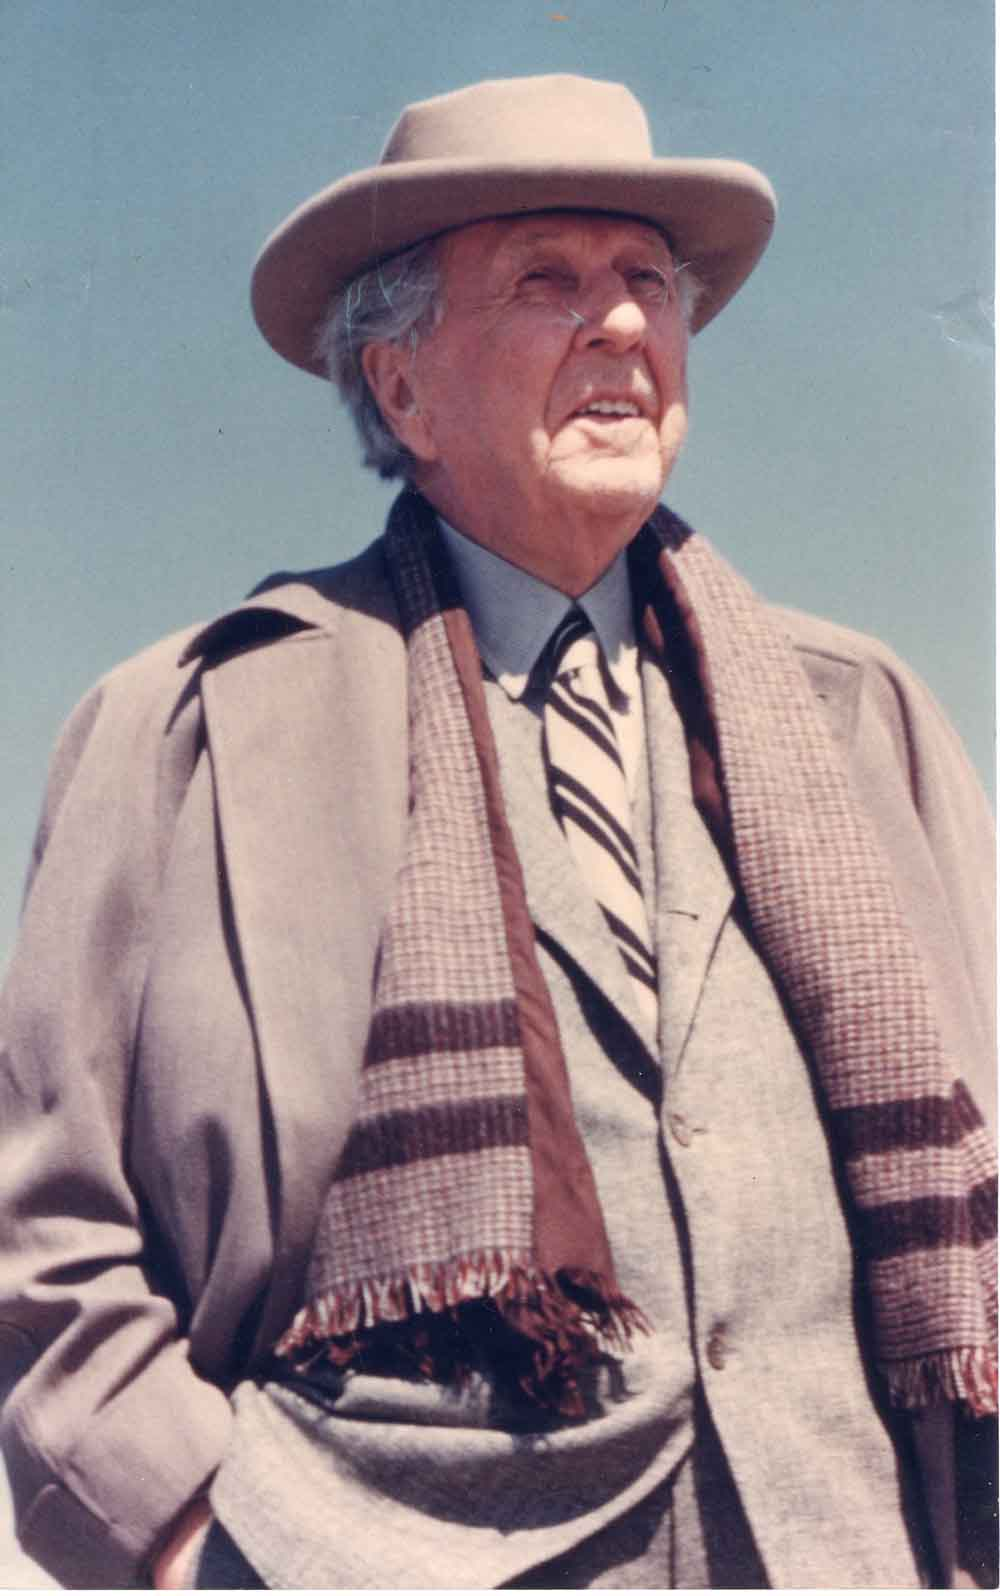 Frank Lloyd Wright. Photograph courtesy of the Western Pennsylvania Conservancy.